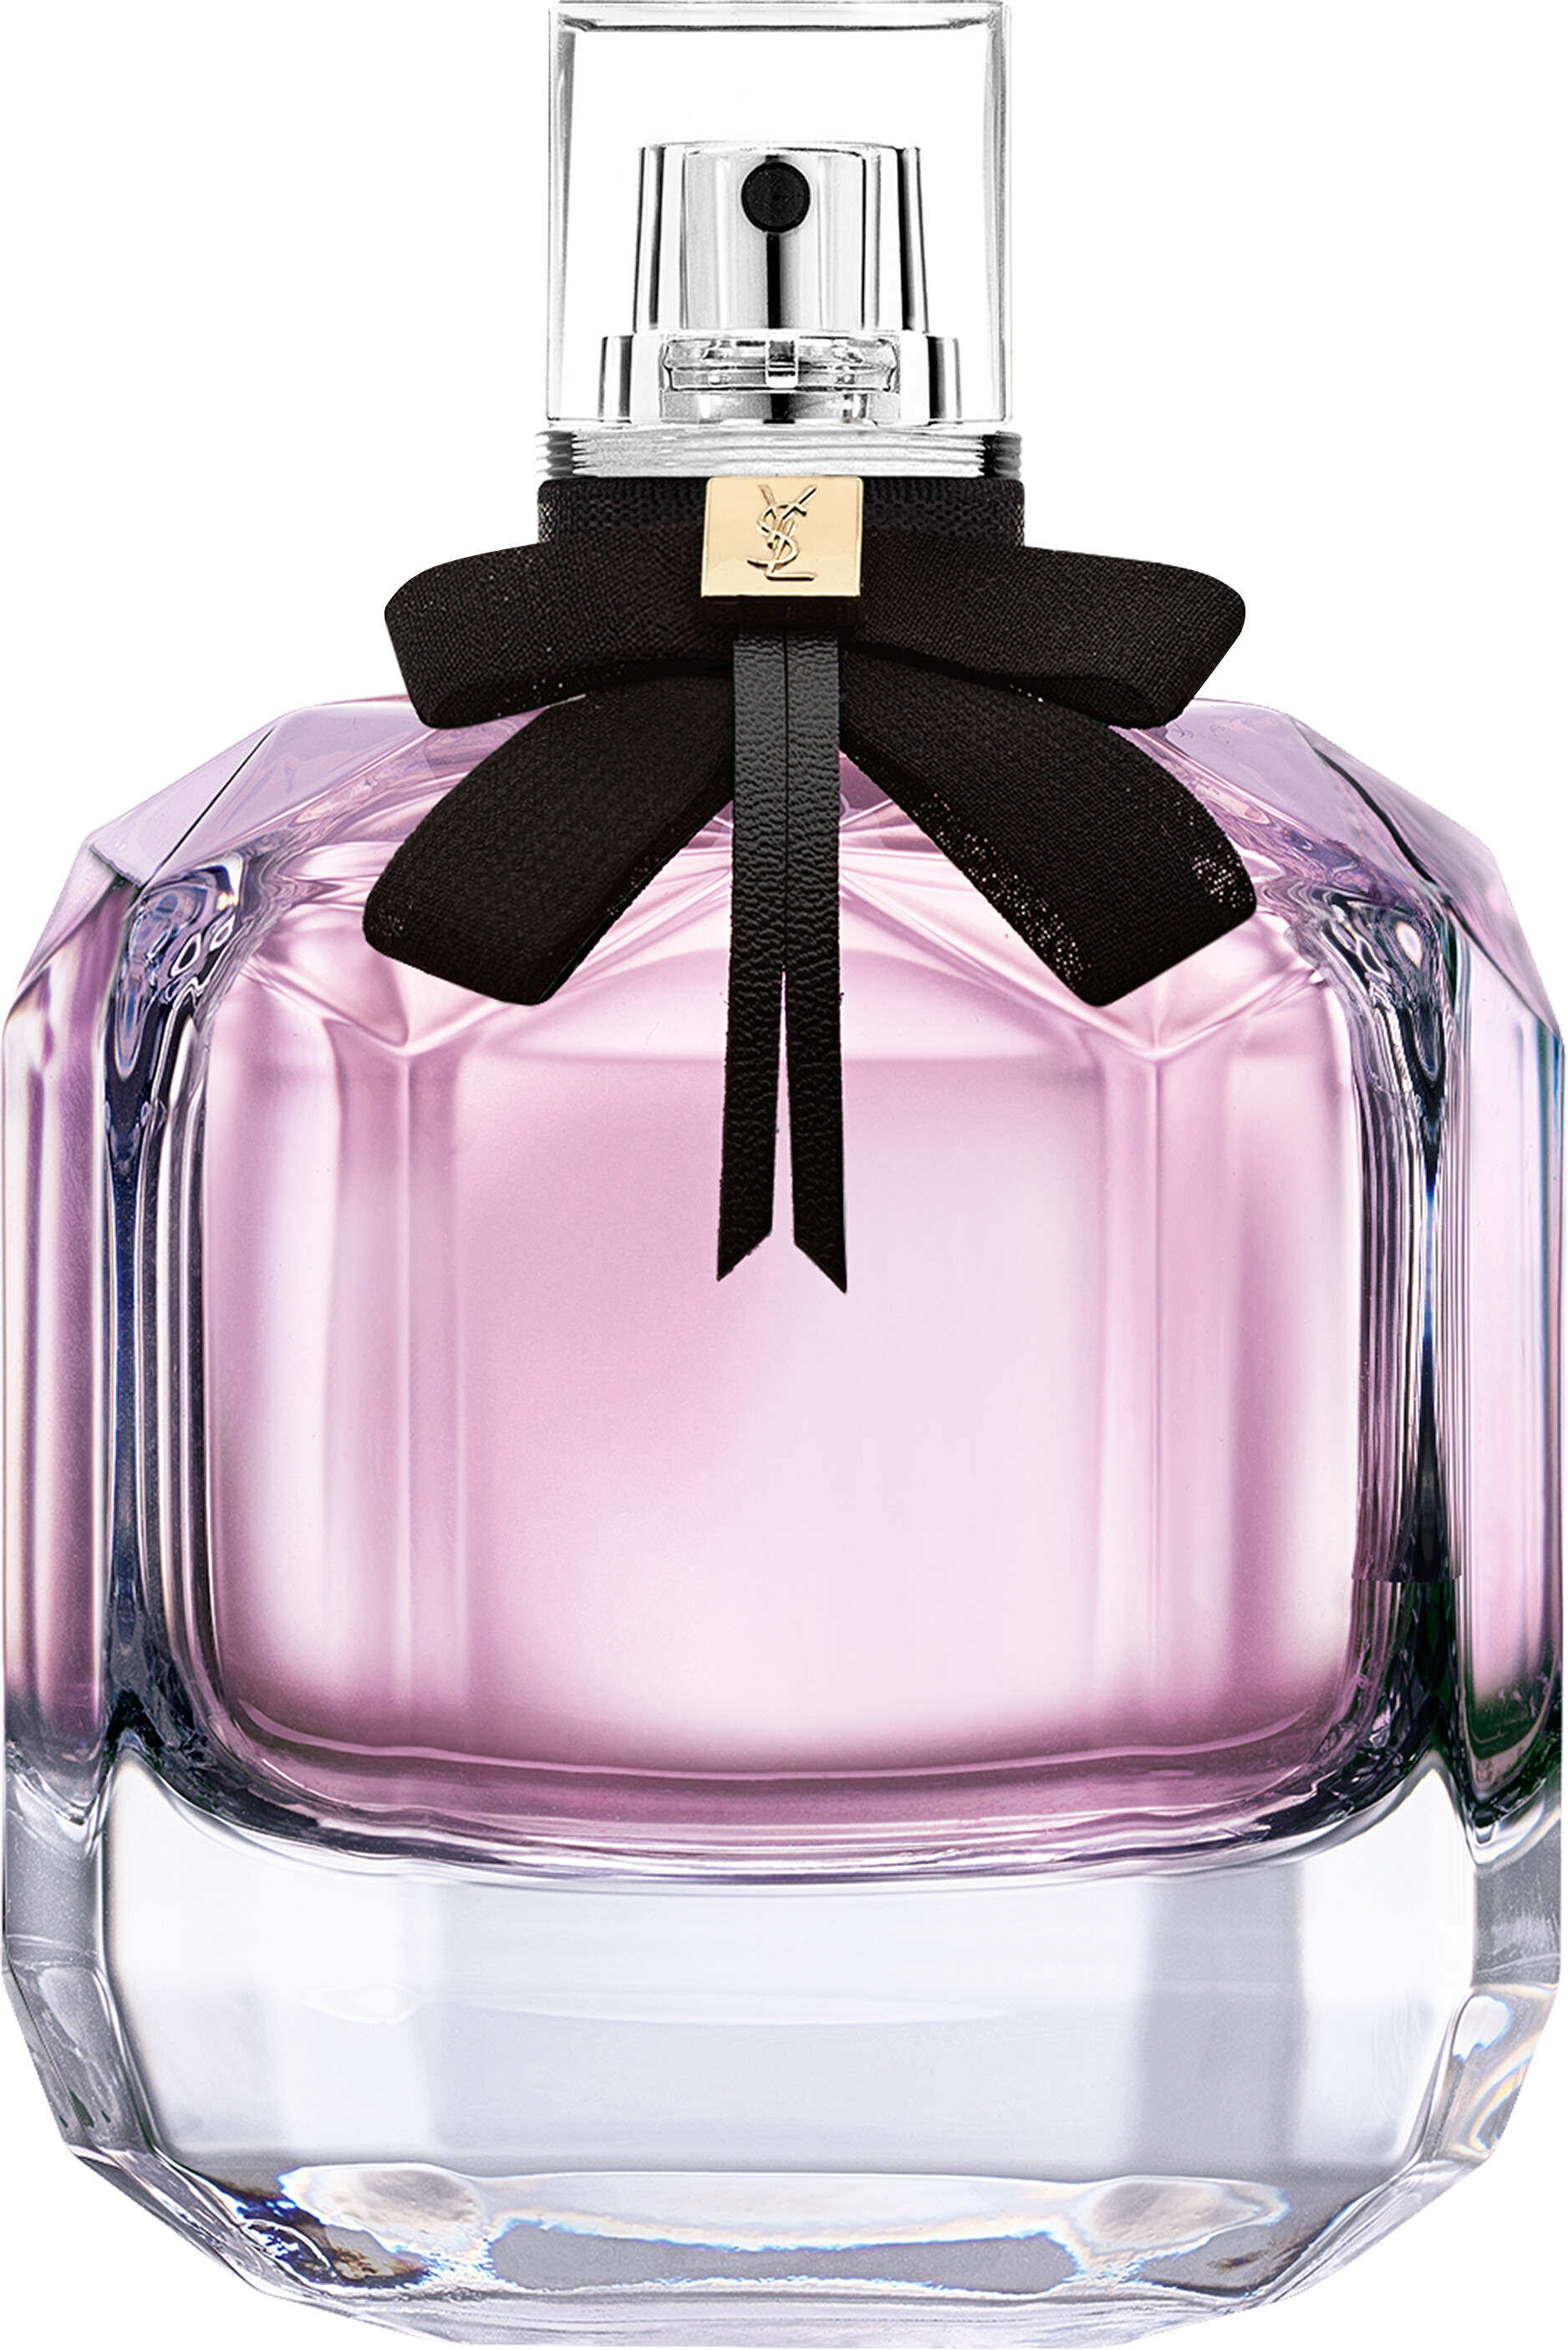 Yves Saint Laurent Mon Paris Eau De Parfum Spray